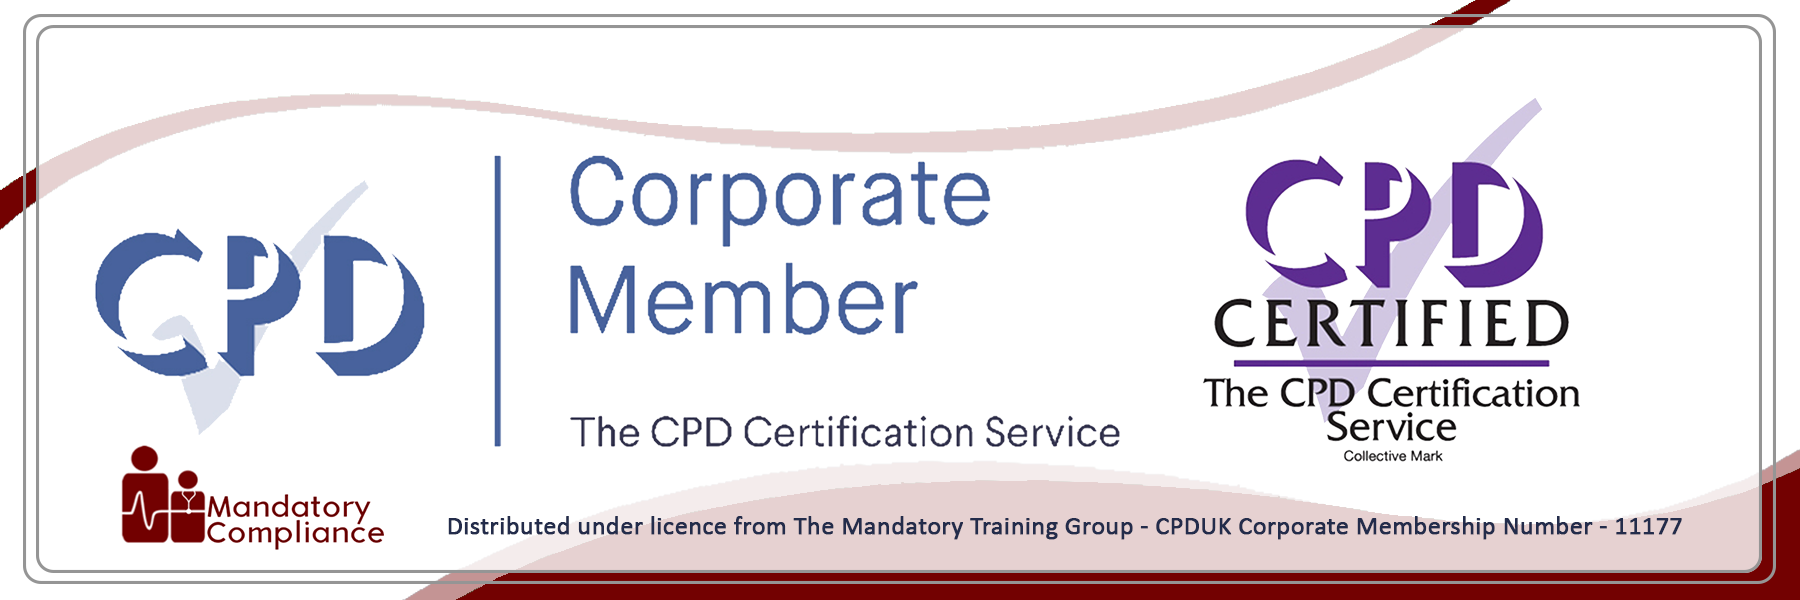 Rights and Responsibilities - Online Training Courses - Mandatory Compliance UK -